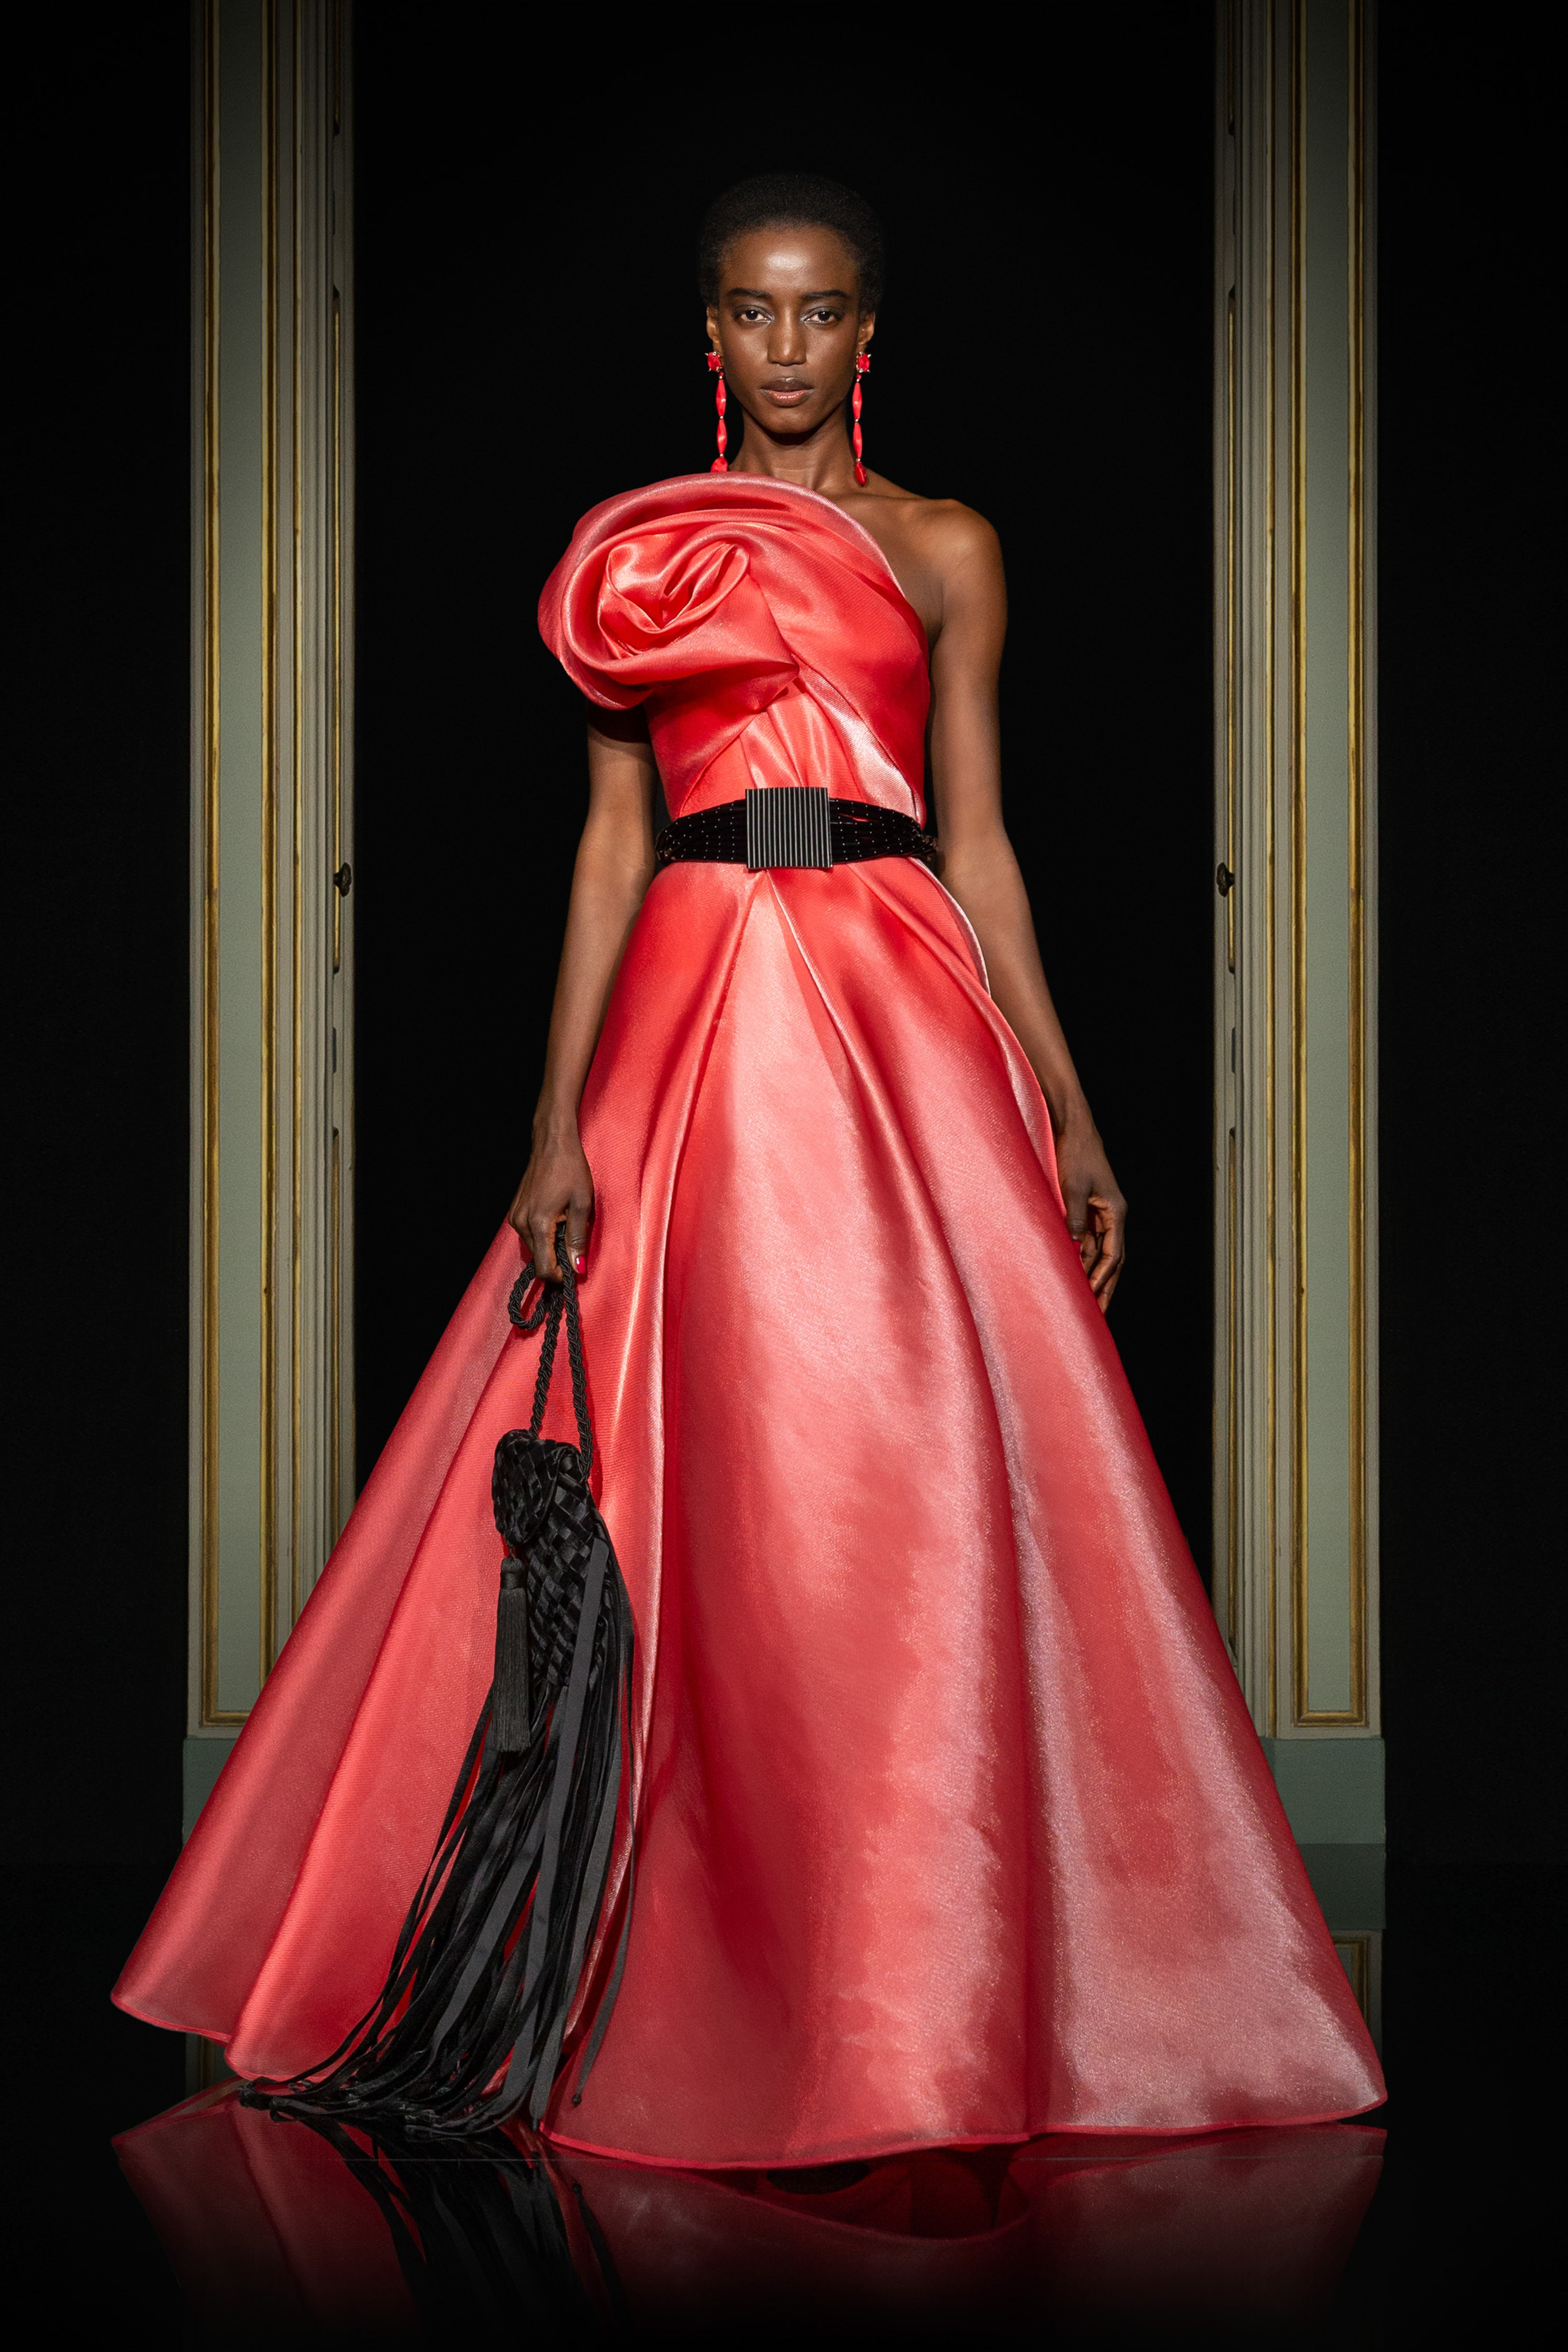 Armani Privé Spring 2021 Couture. A lady wearing a coral red gown and a black belt around the waist.